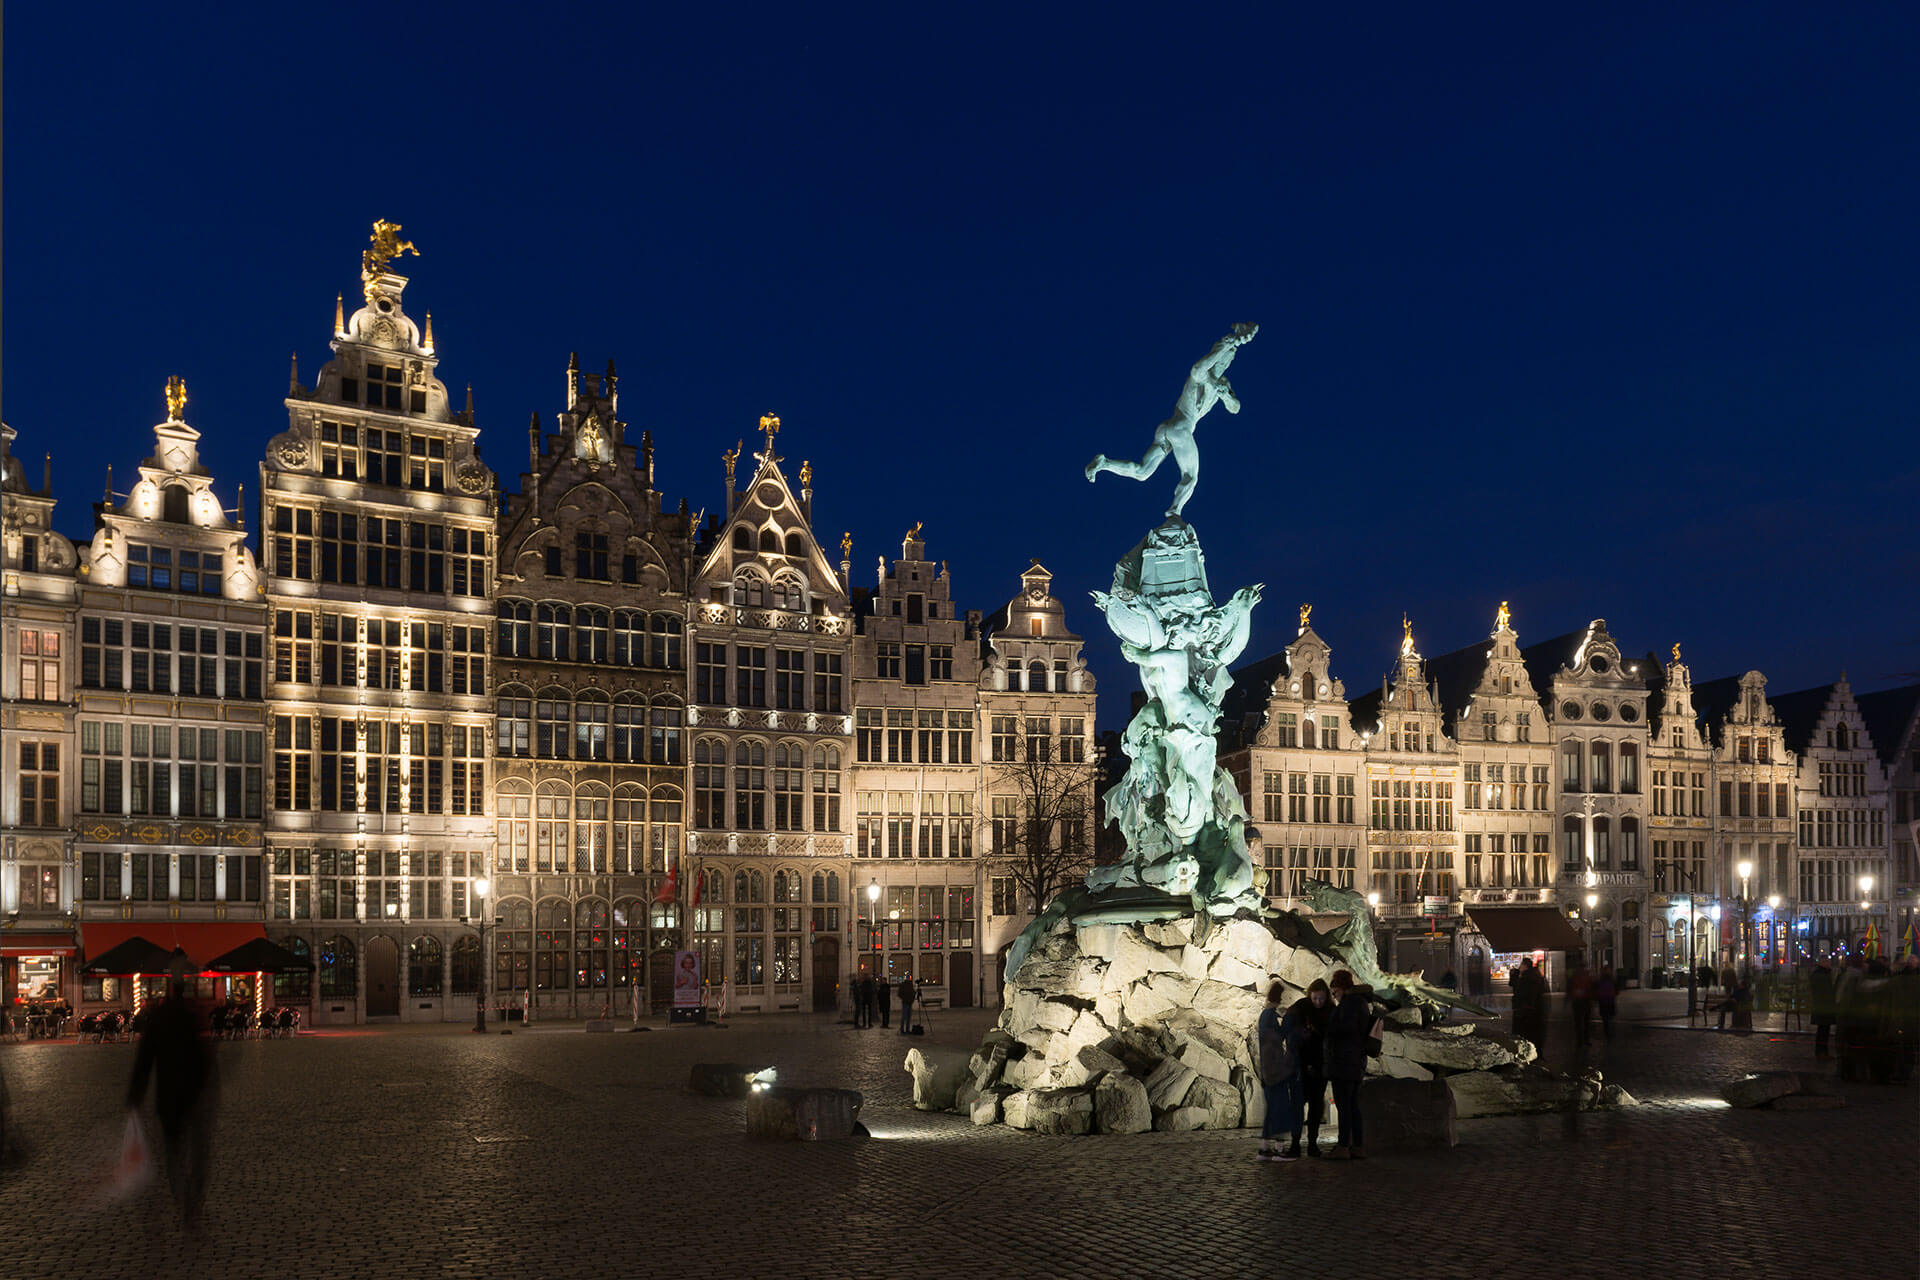 Schréder floodlights create a welcoming nocturnal ambiance for Grote Markt in Antwerp